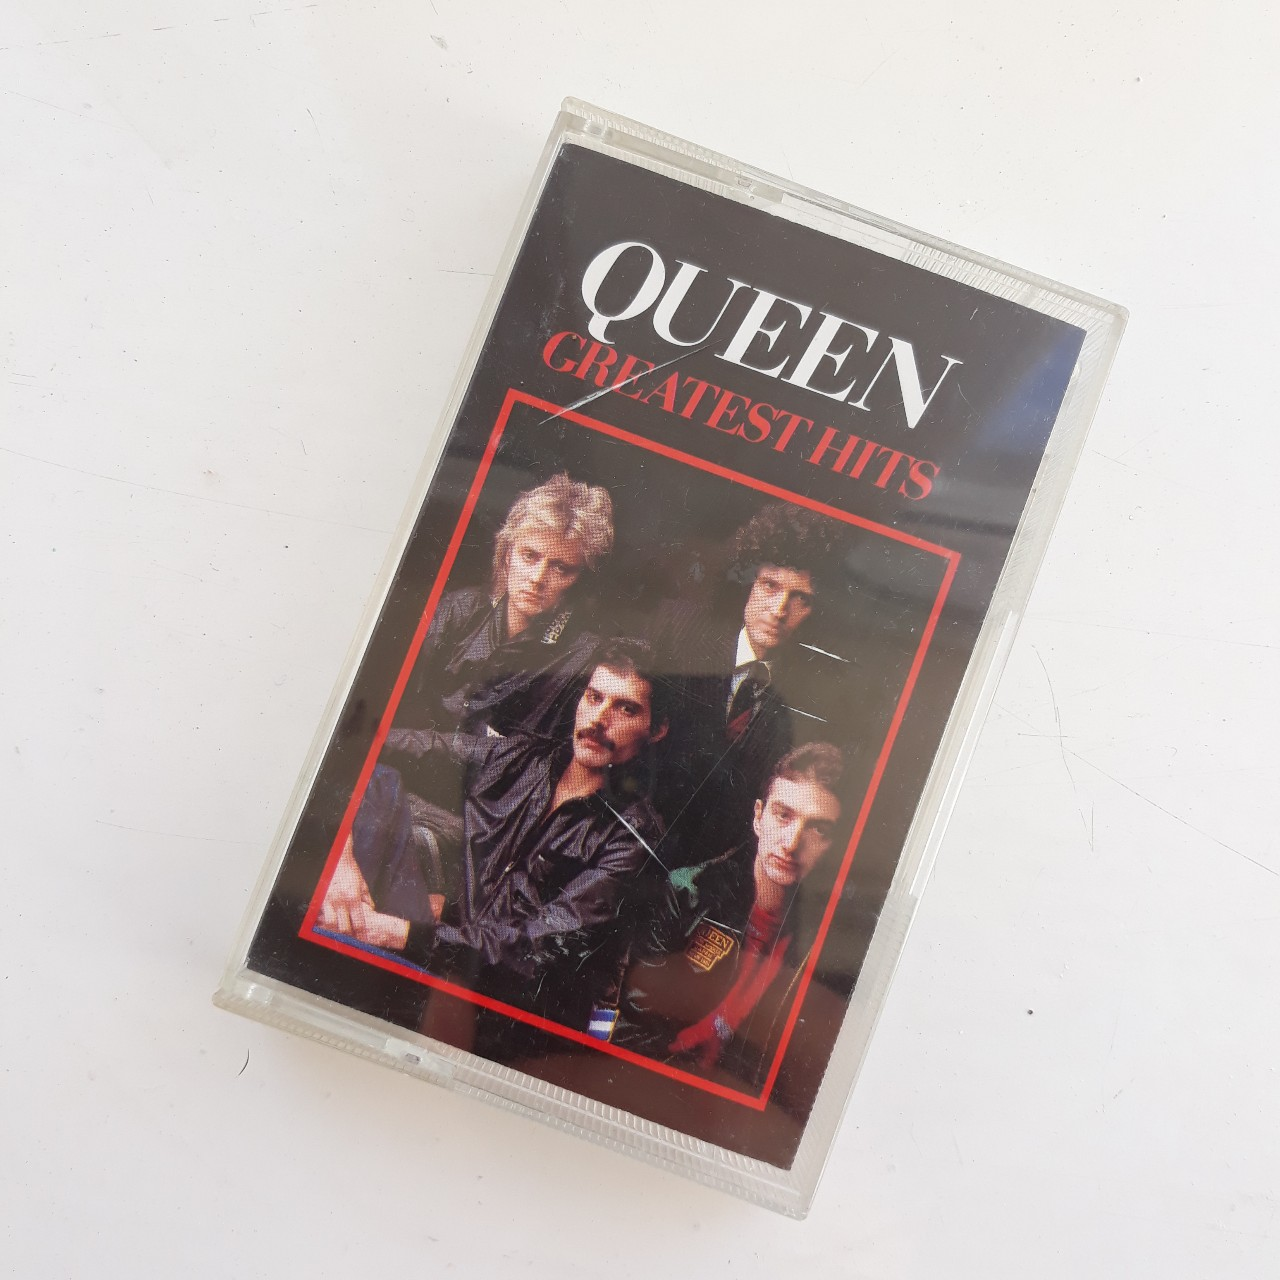 Queen greatest hits cassette tape. The outer tape... - Depop